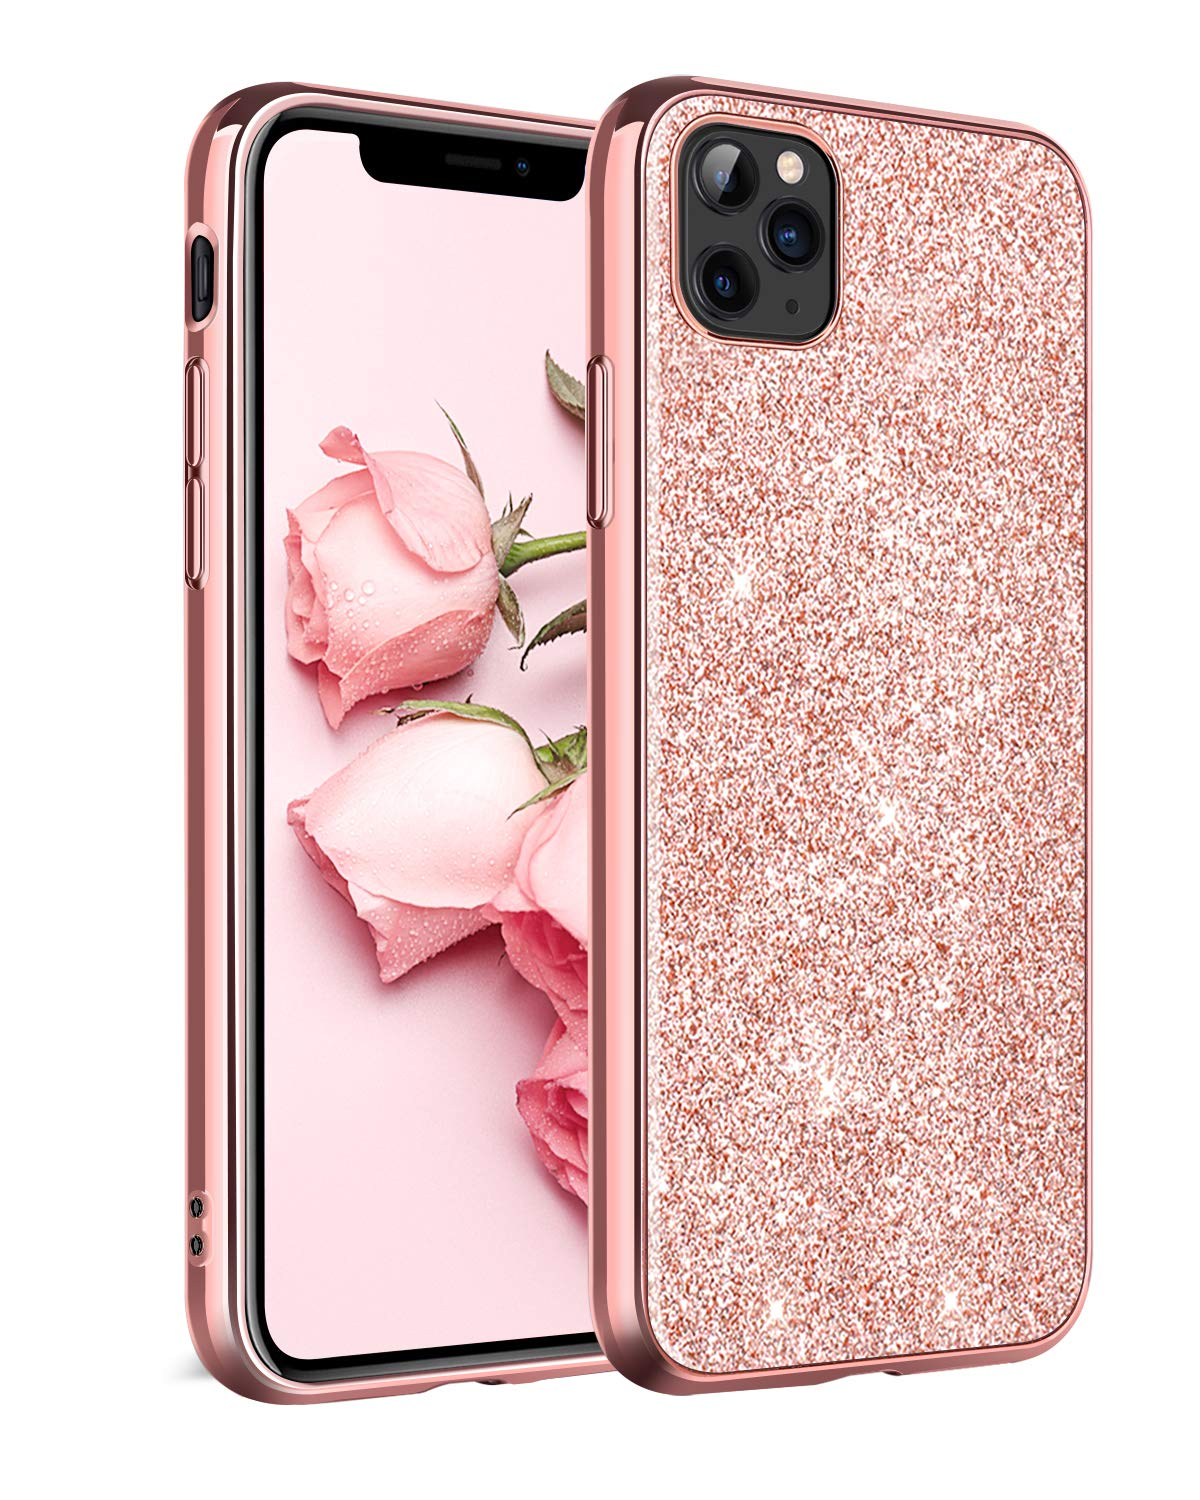 """DOMAVER iPhone 11 Pro Max Case, iPhone 11 Pro Max Phone Case with Sparkly Trendy Slim Smooth Cell Phone Cover Rose Gold Glitter Shockproof Protective Case for iPhone 11 Pro Max 6.5"""" (2019 Release)"""